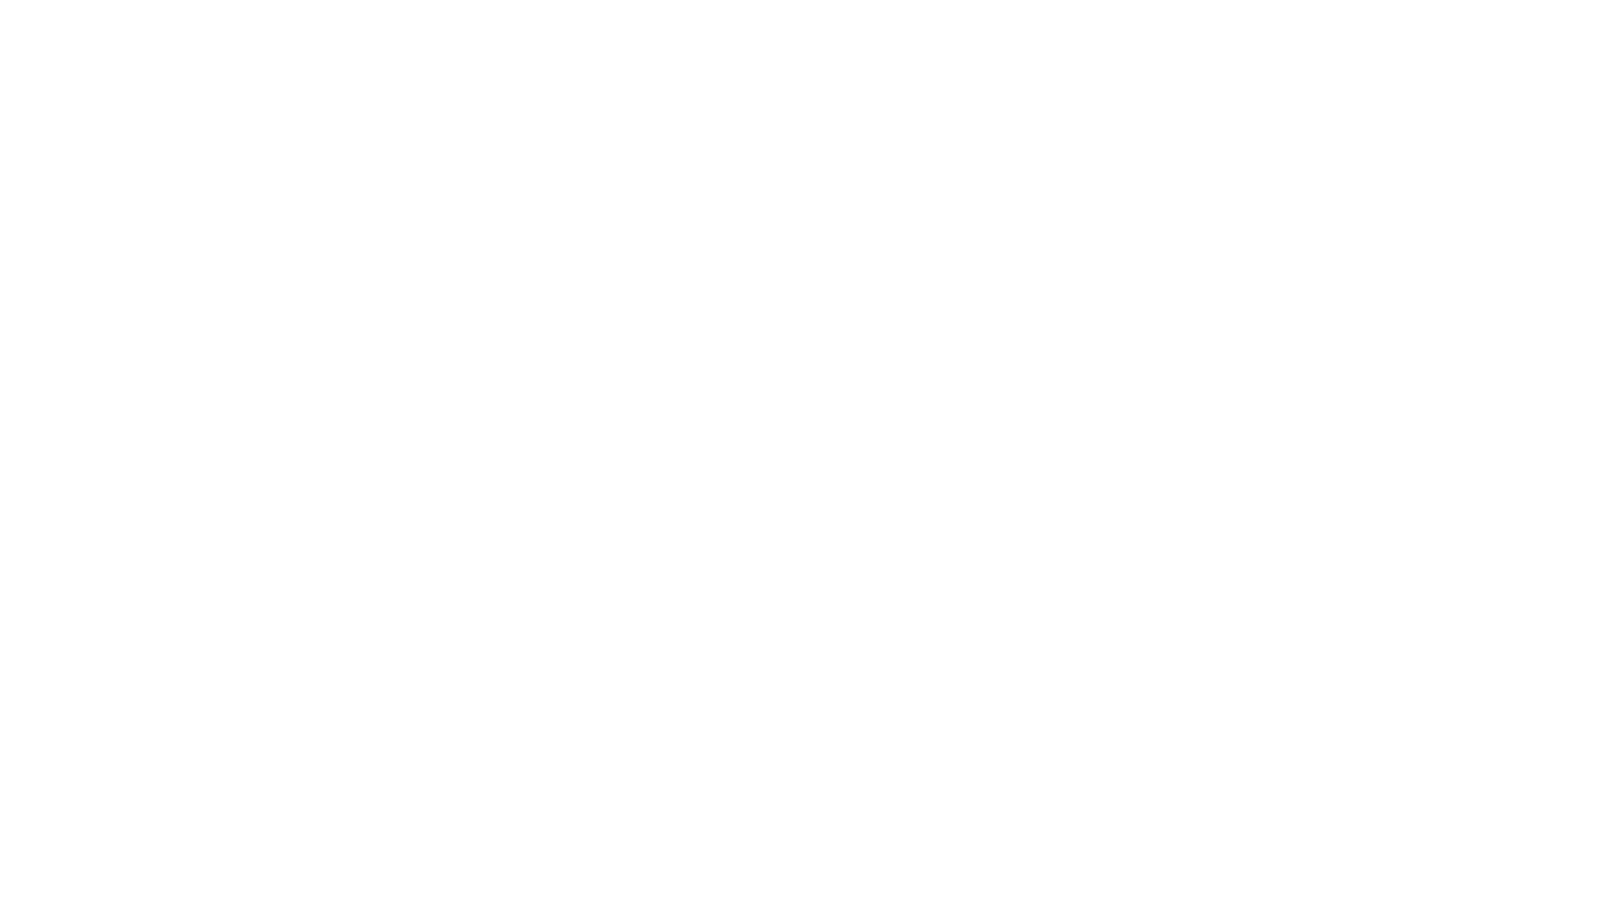 Blank png. New full hd pxel